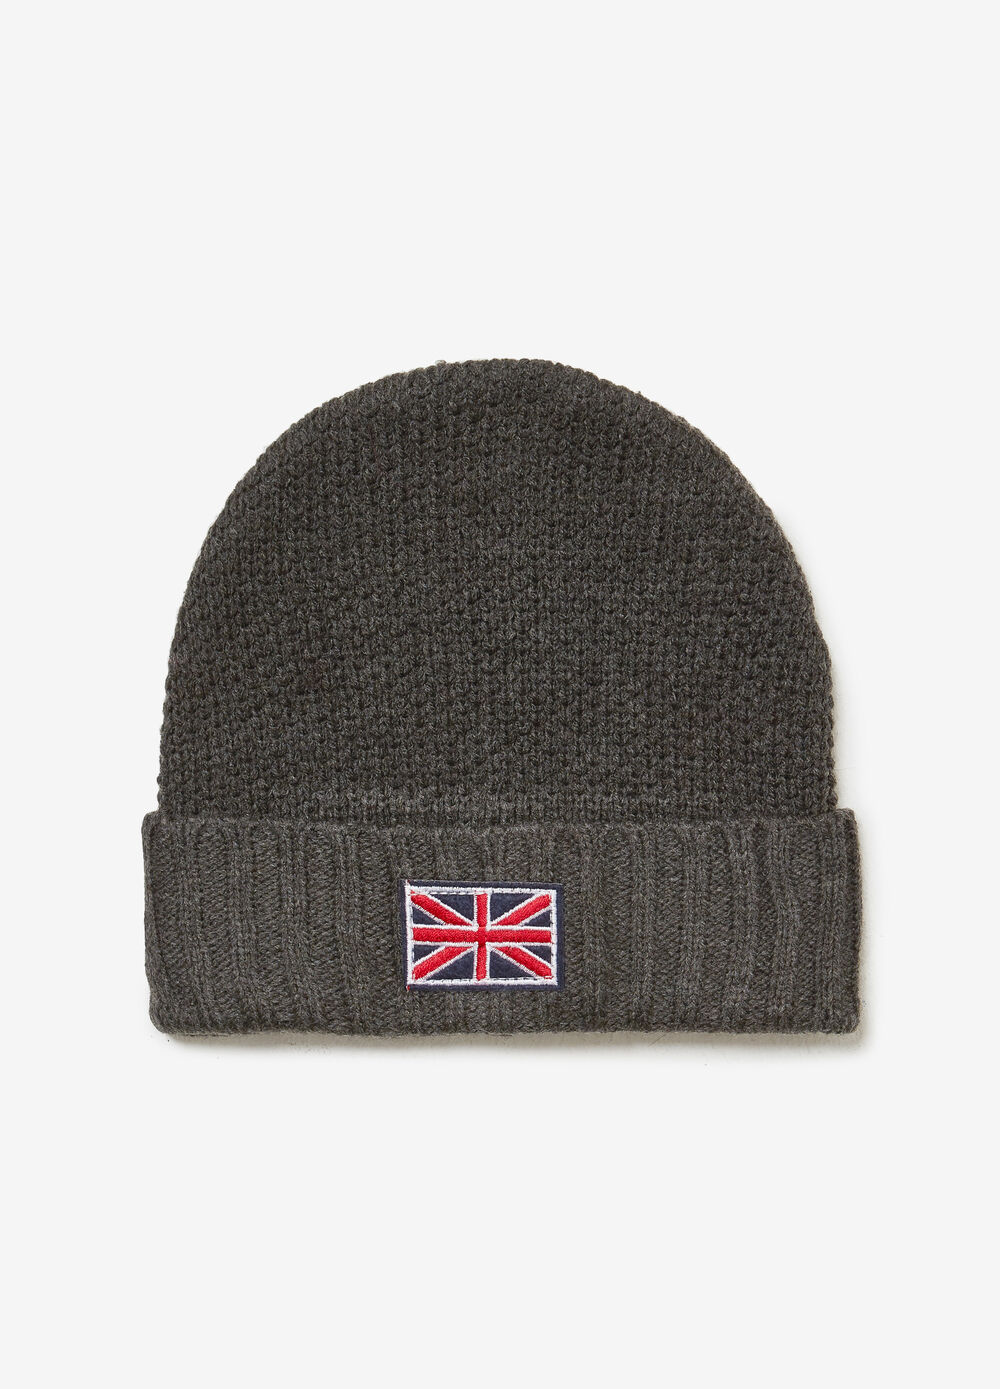 Beanie cap with English flag patch